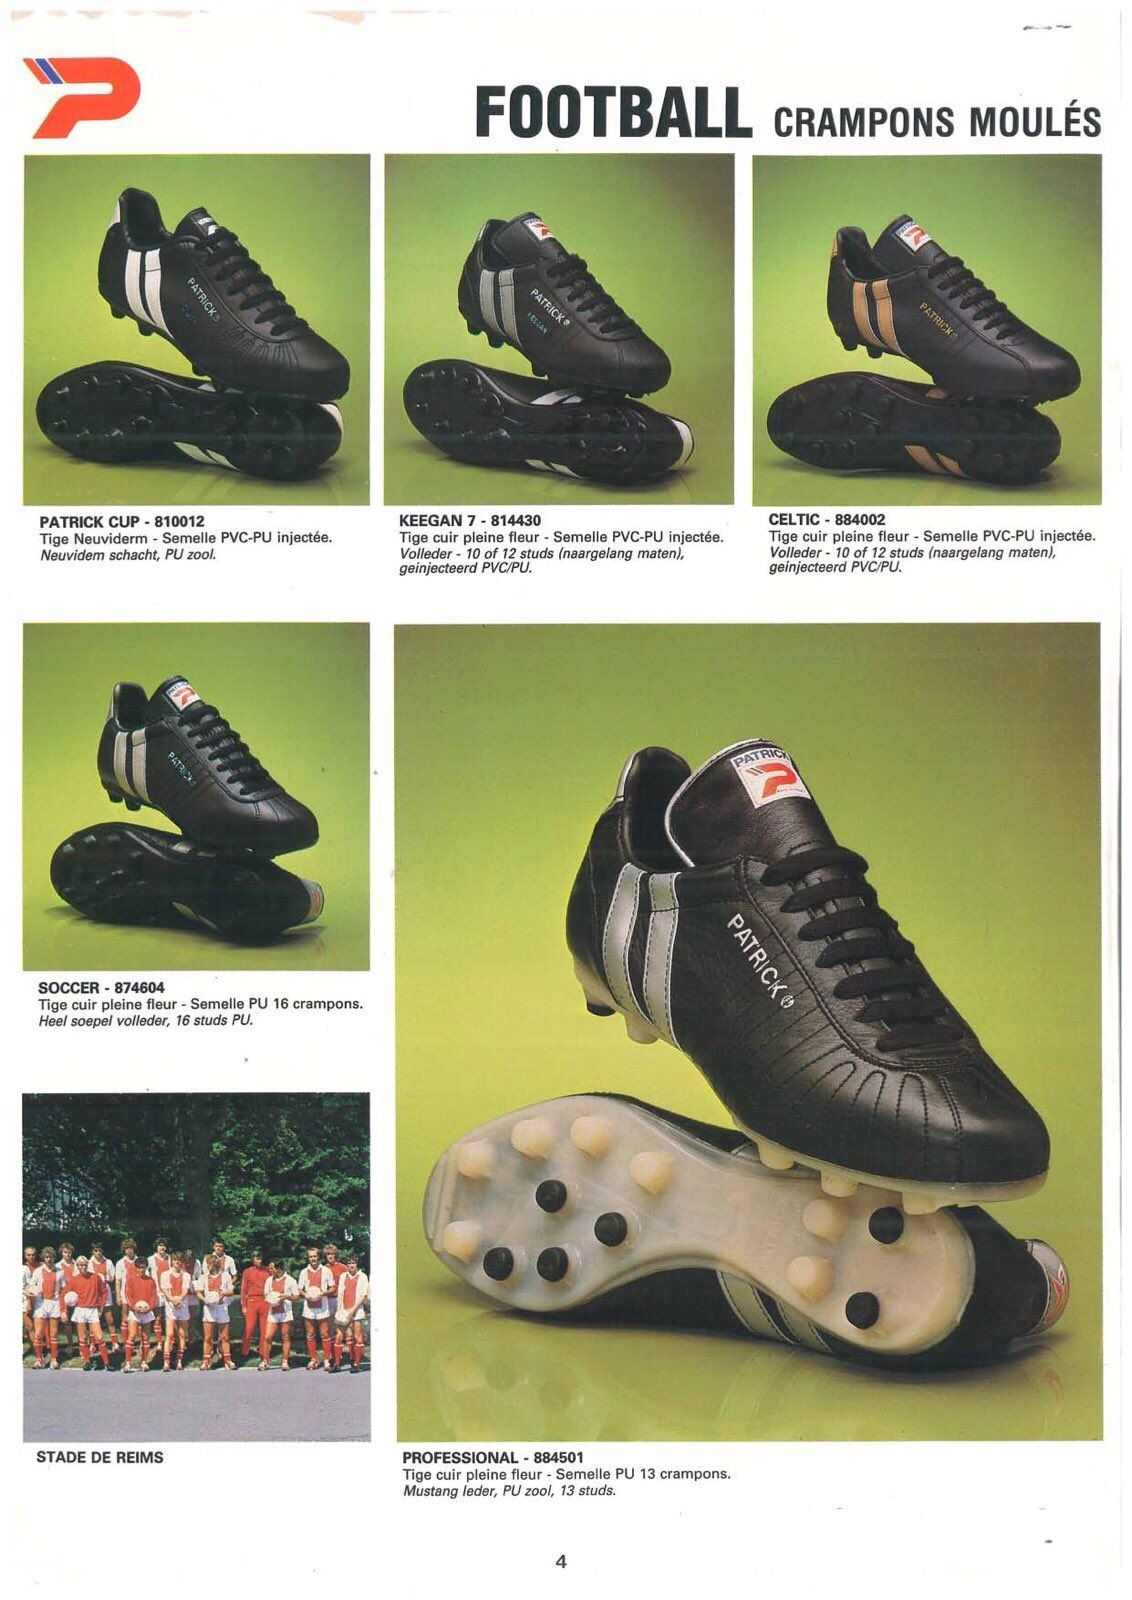 d499440206037 1983 Patrick Catalogue Pages Soccer Boots, Soccer Gear, Football Boots,  Soccer Cleats,